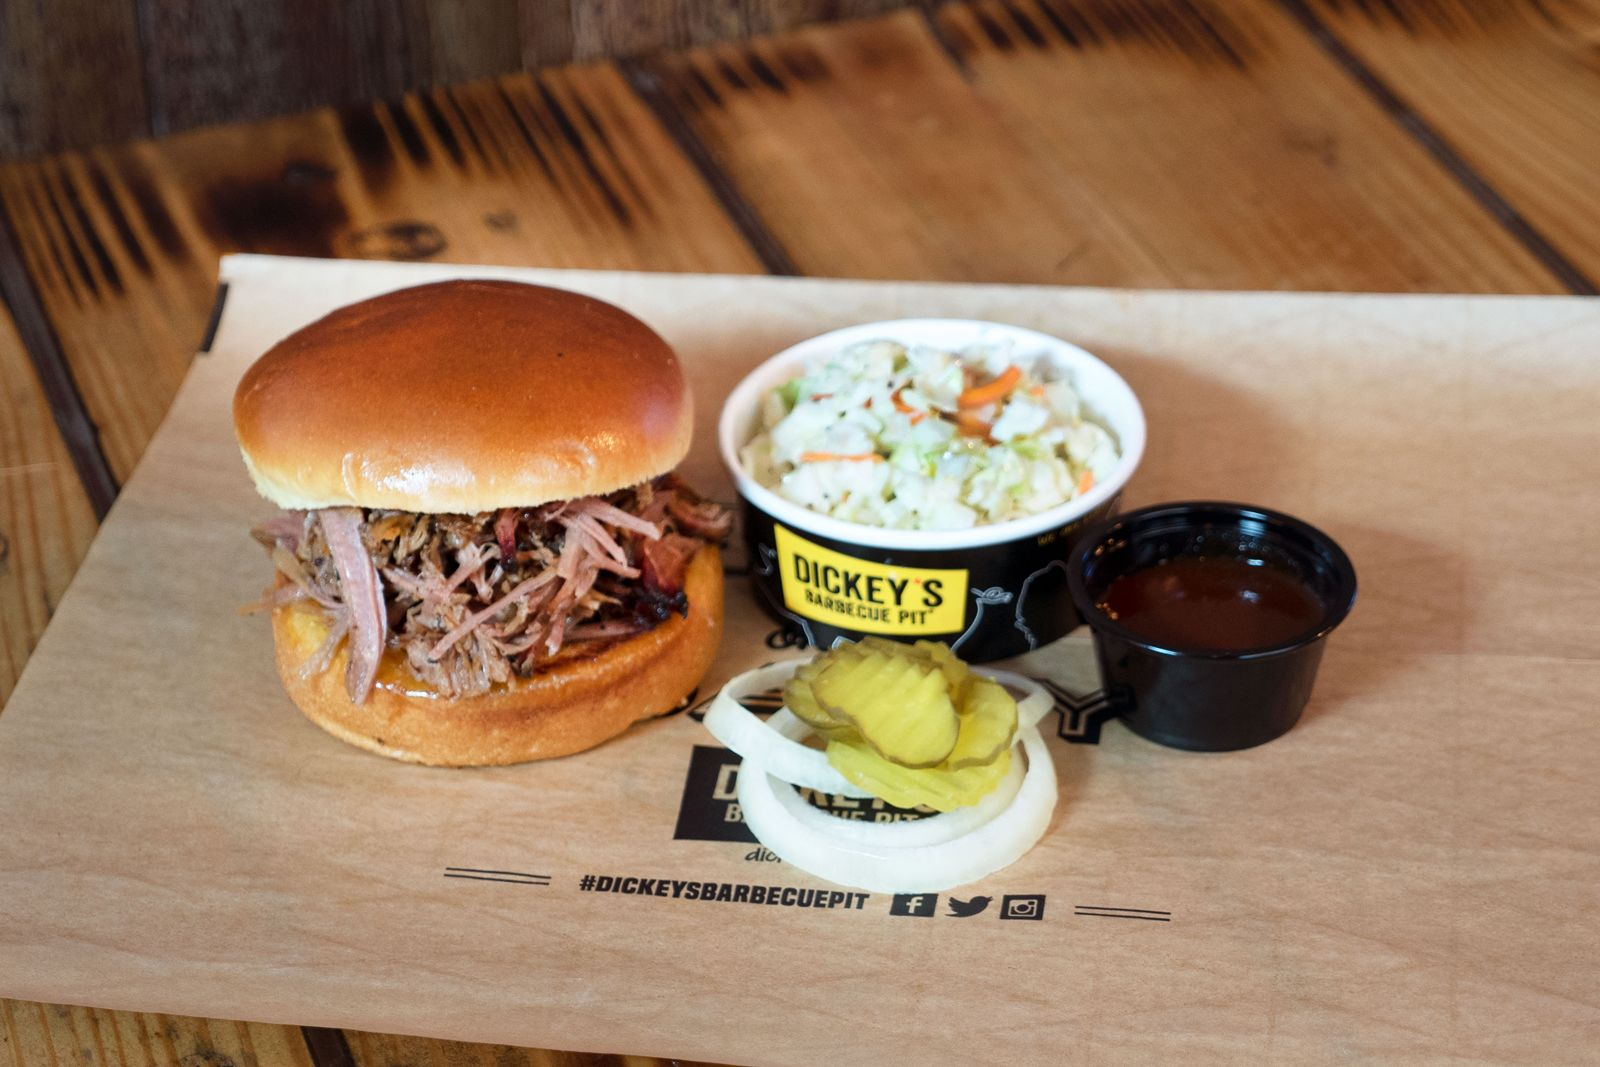 Dickey's Barbecue Pit Continues Growth with 28 New Locations Added in Q3